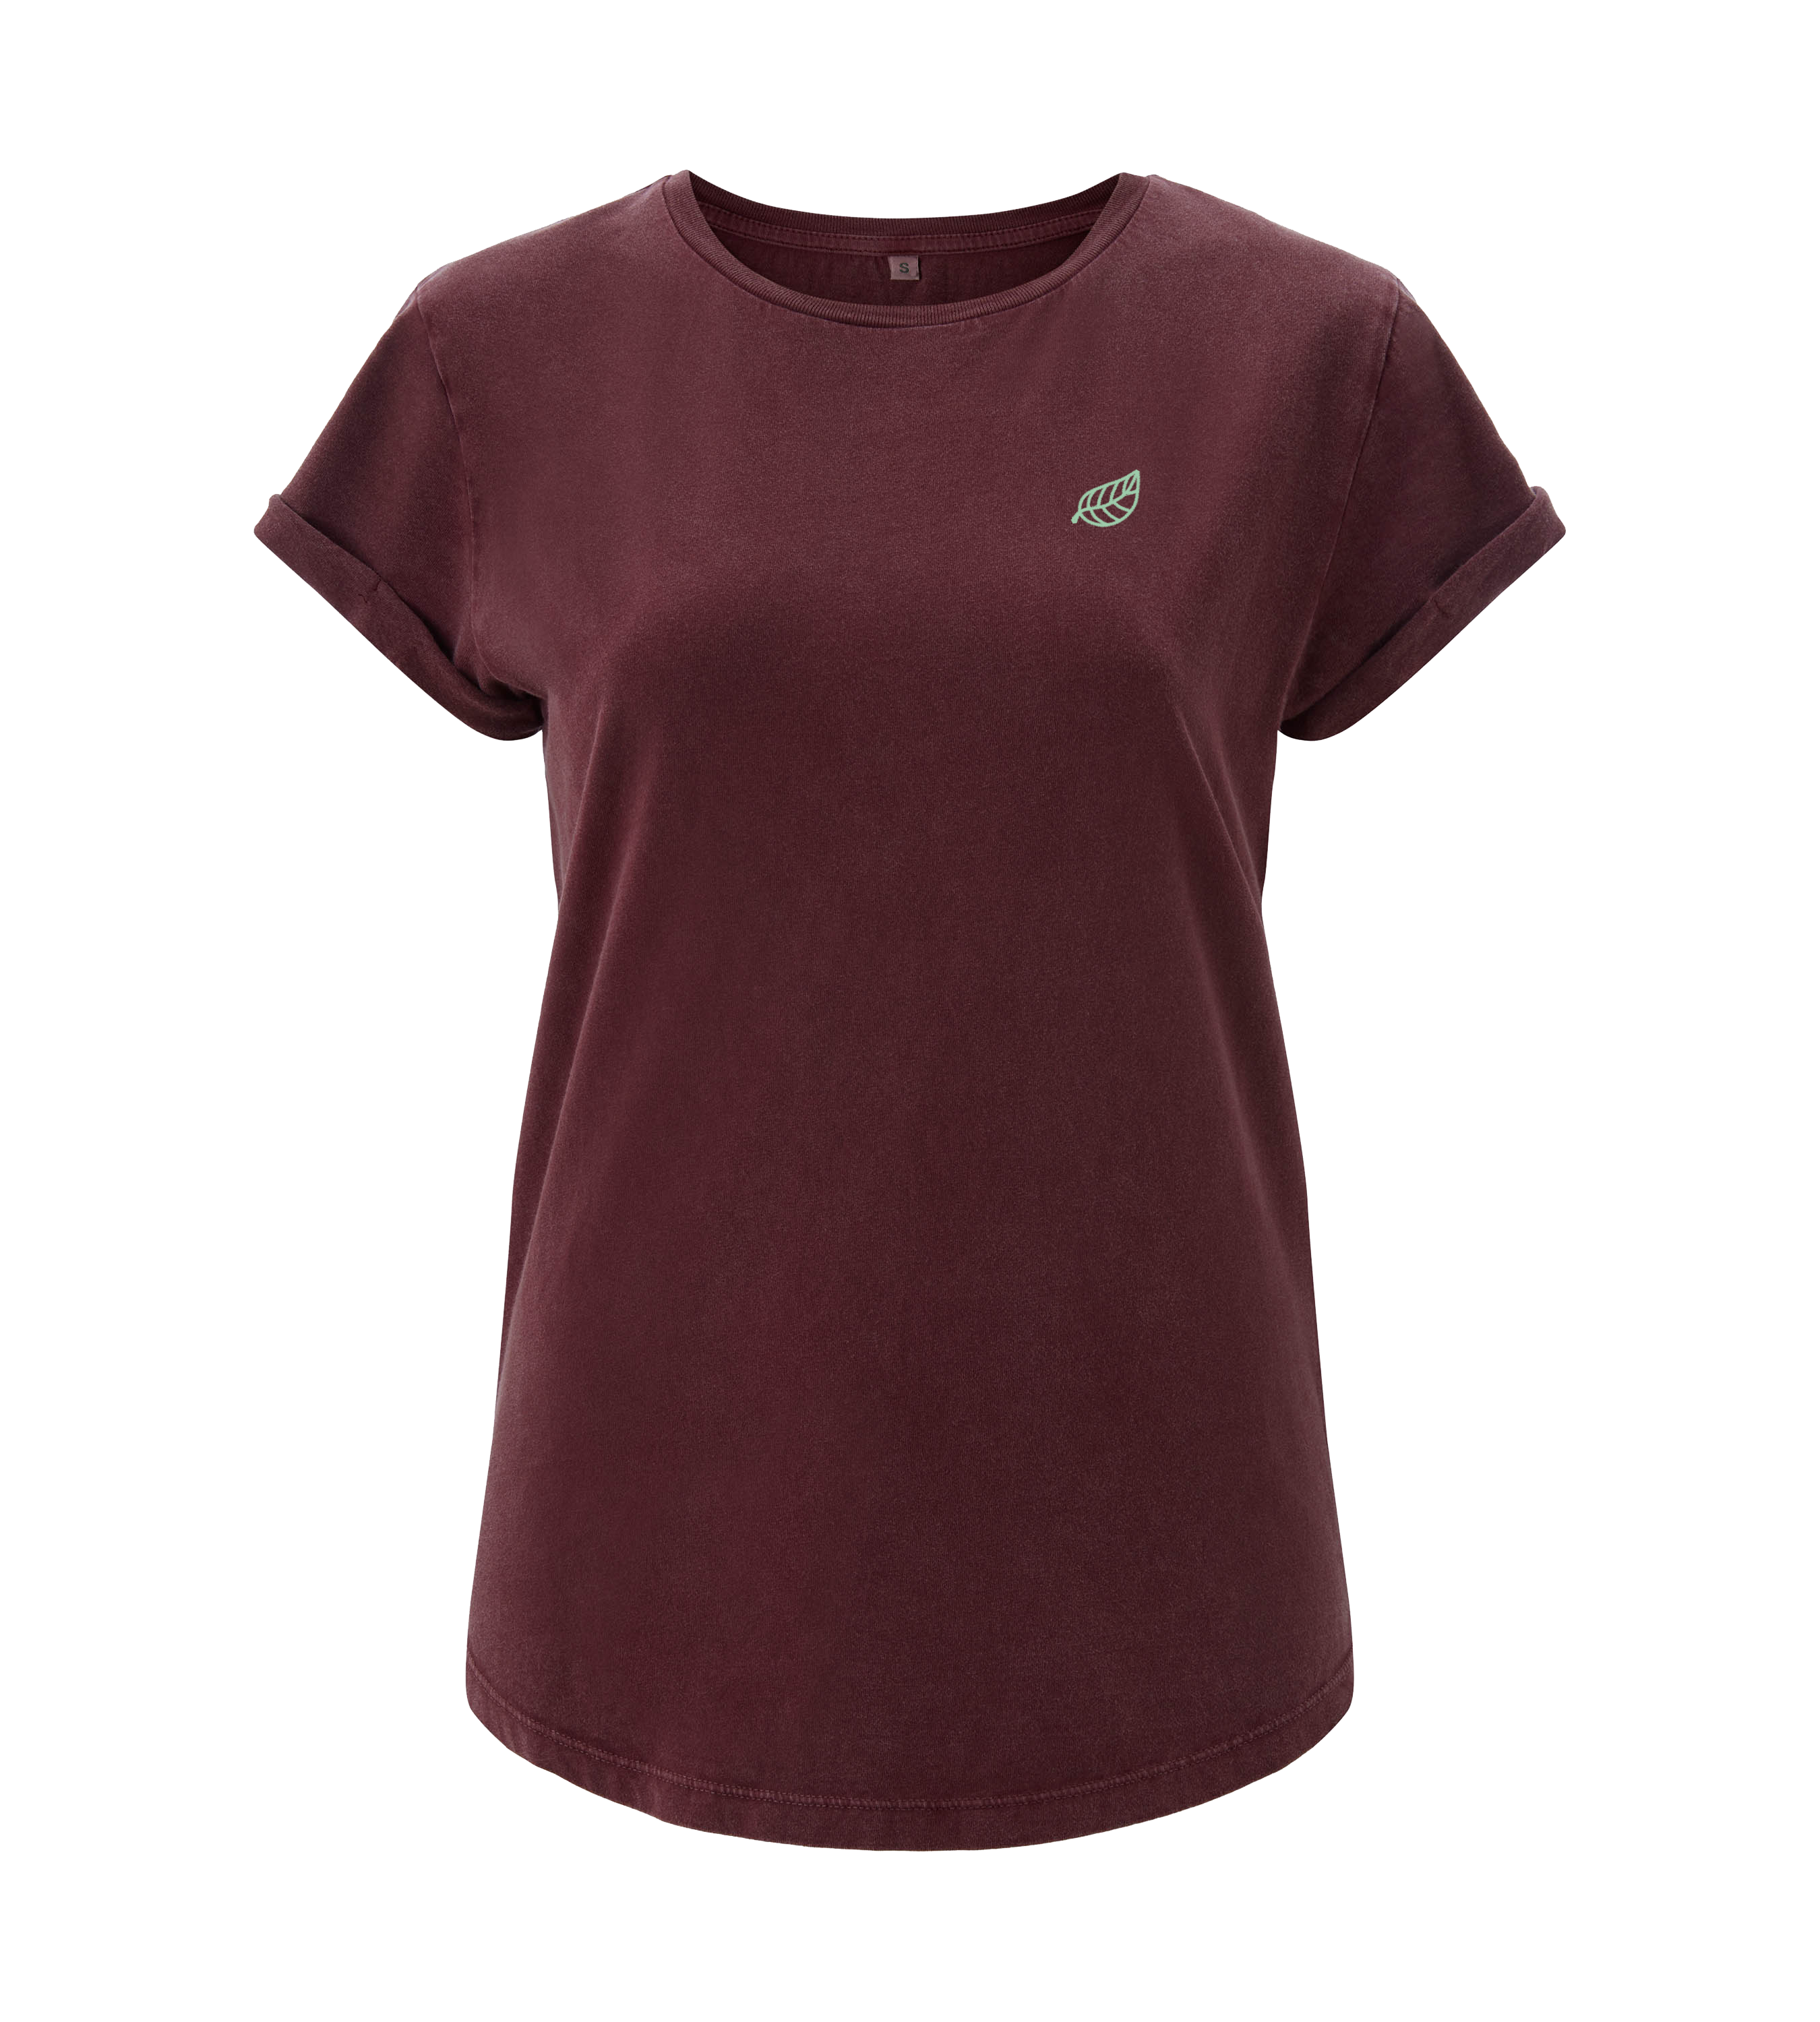 Rolled Up Sleeve - Stone Wash Burgundy - Frauen